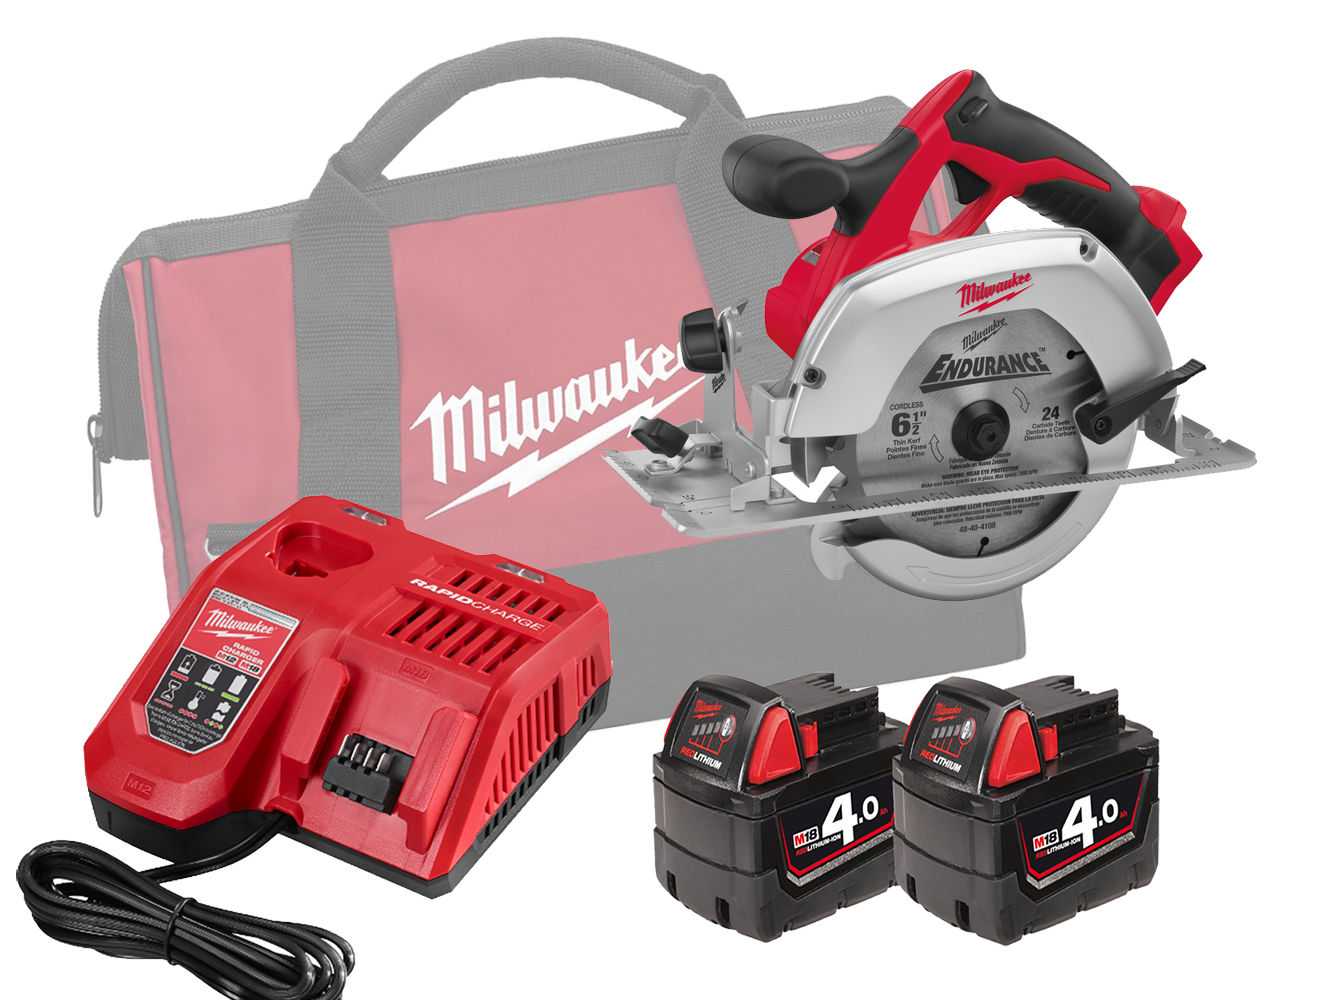 Milwaukee HD18CS 18V Heavy Duty 165mm (55mm) Circular Saw for Wood and Plastic - 4.0ah Pack